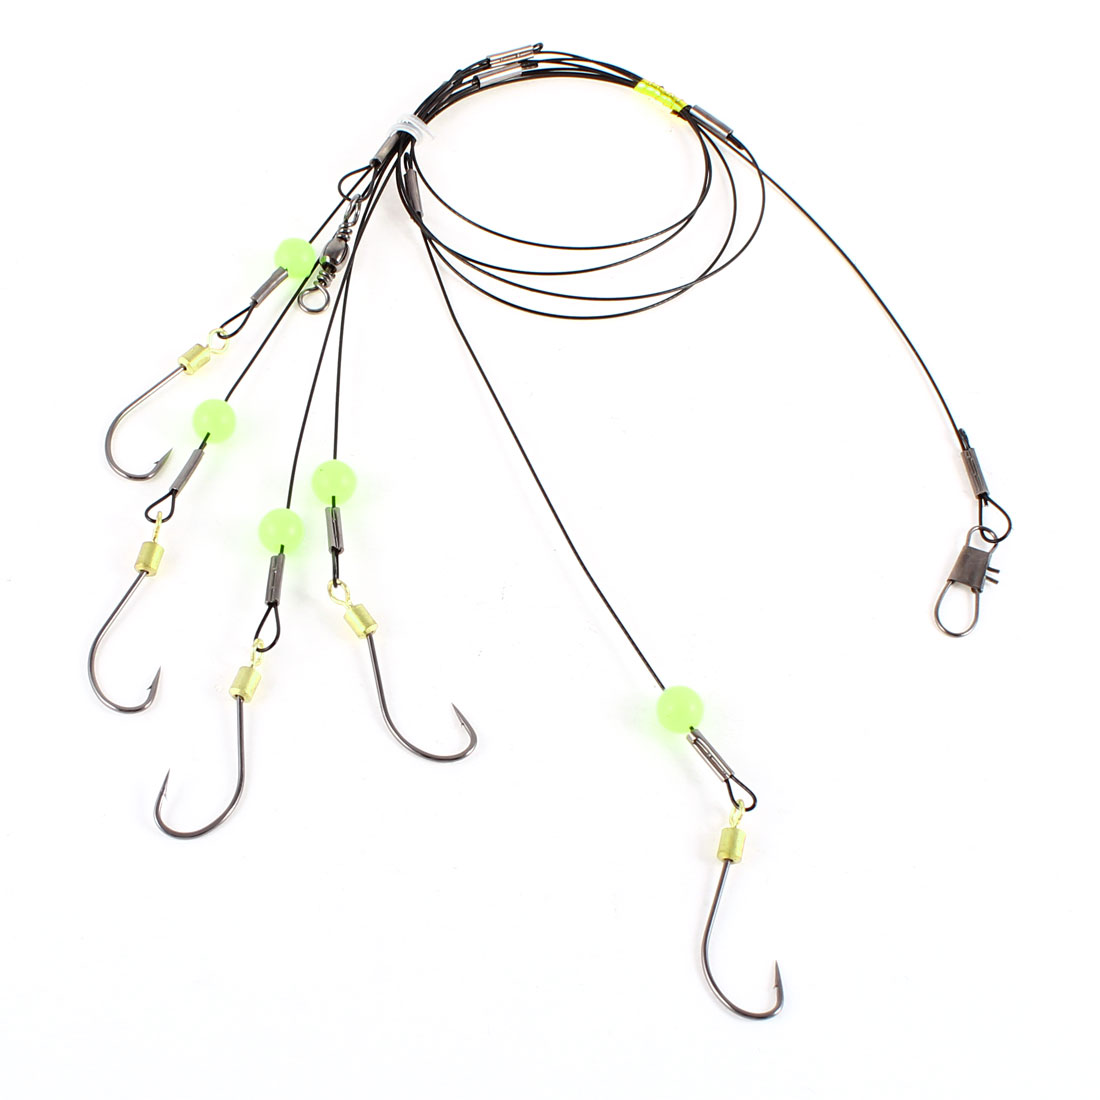 Fishing Rig Line Size 18# Hook Connector Wire Leader Replacements